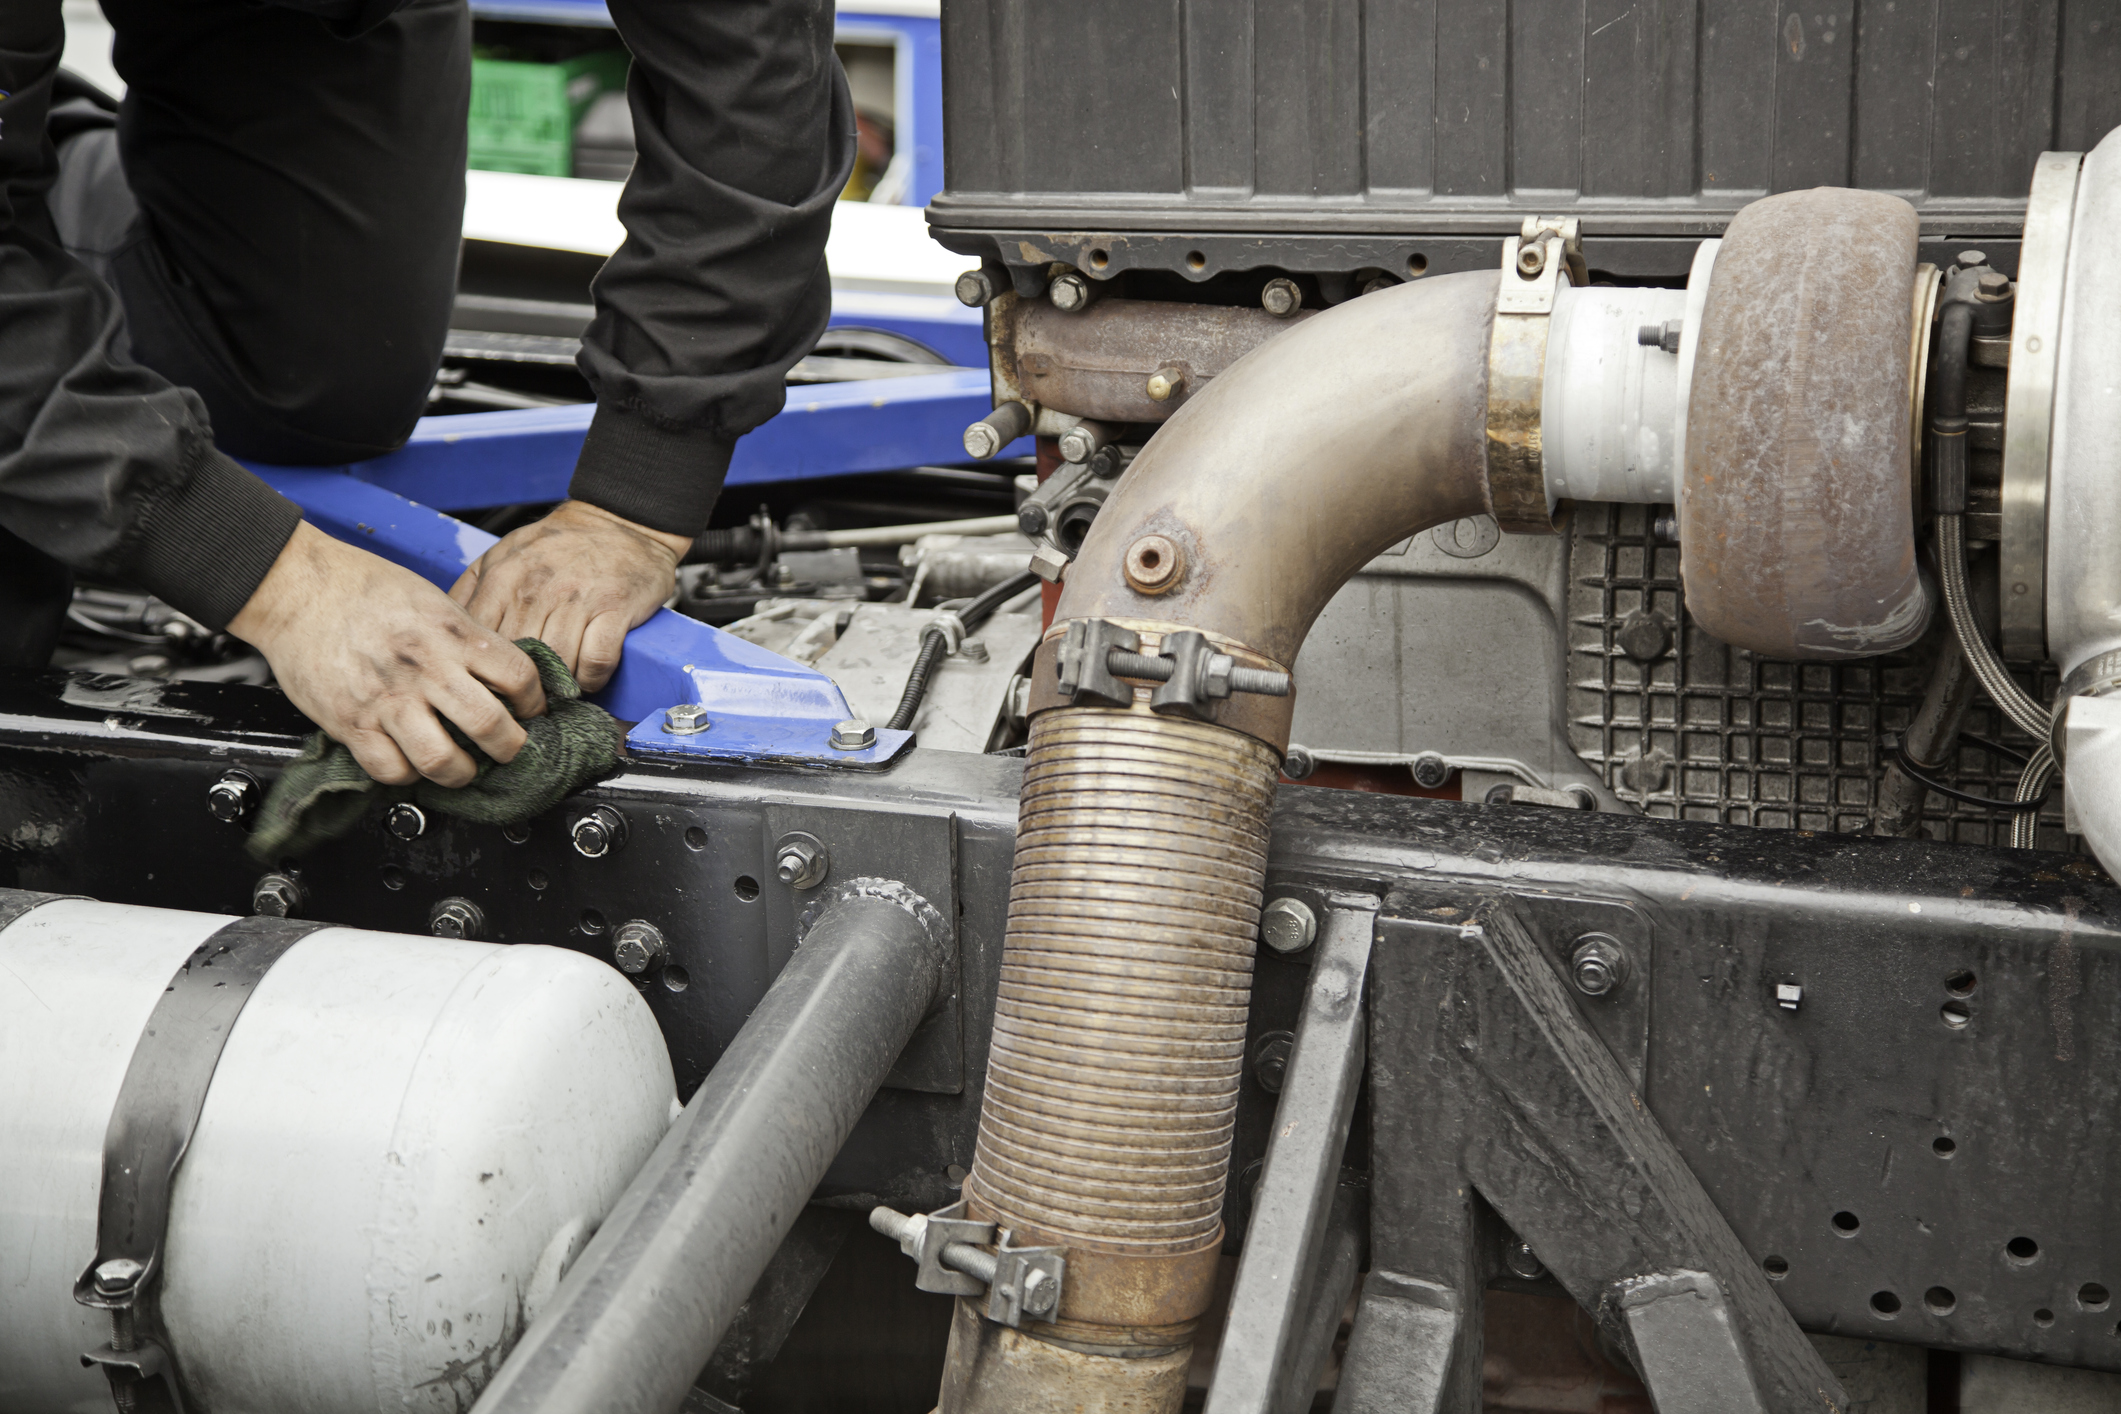 Heavy Truck Repair - We offer all types of repairs and service including certified DOT Inspections, Mobile service and diagnostics. Same day emergency repairs.